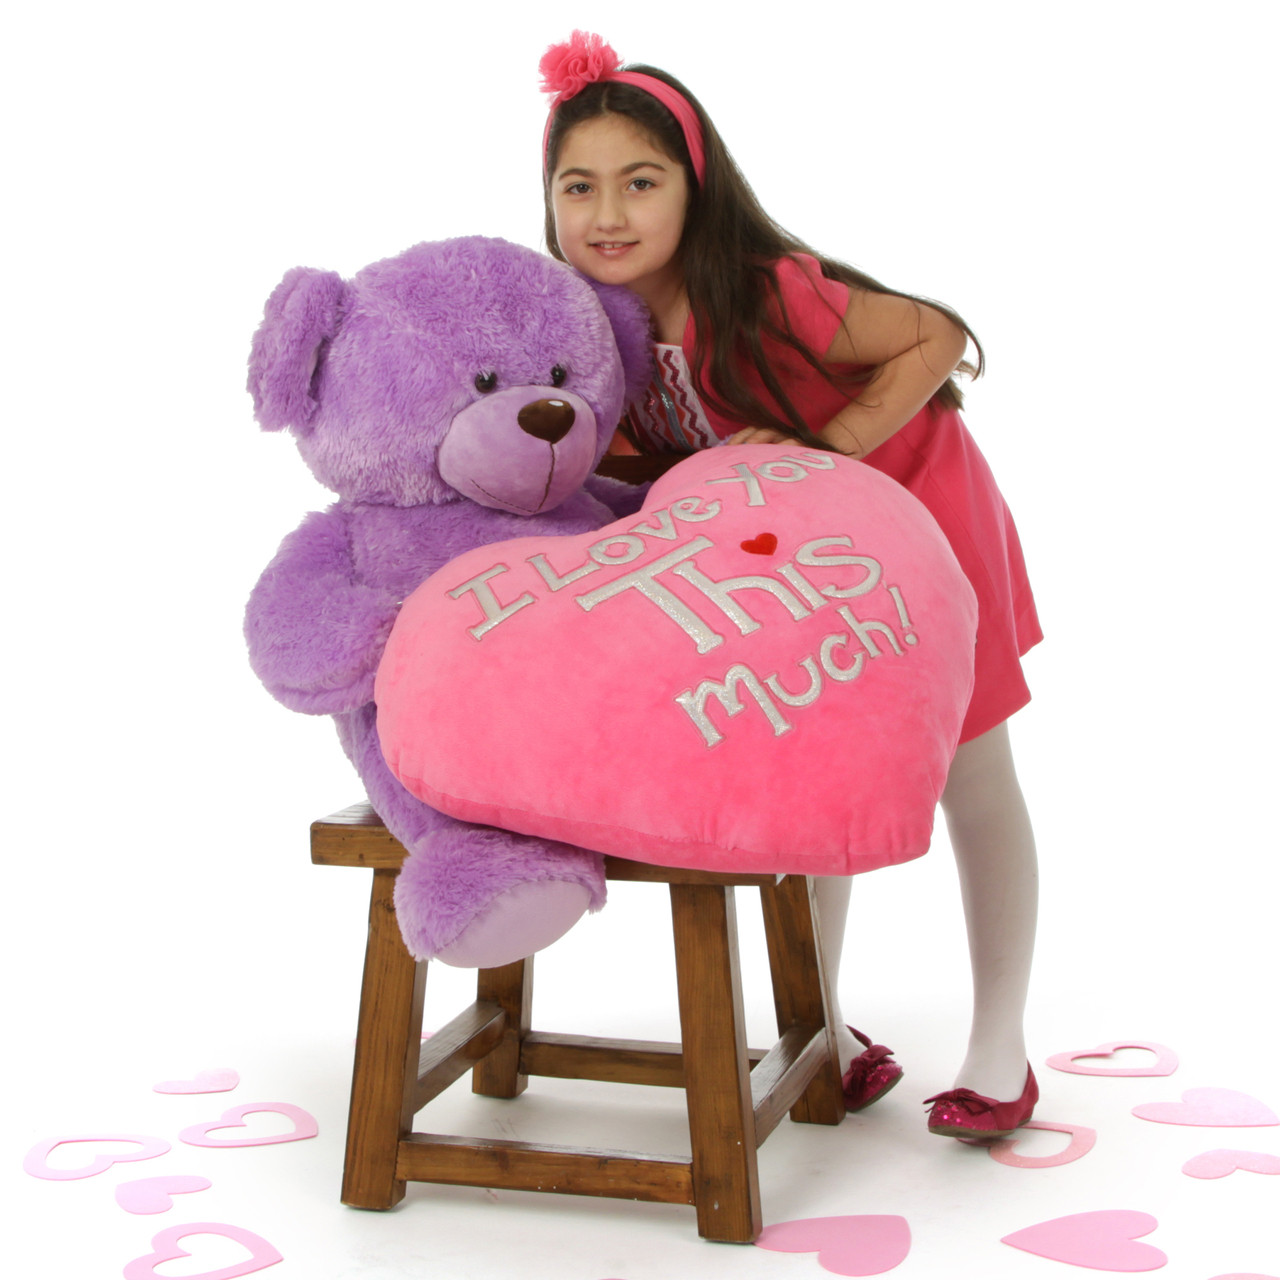 """Purple Sewsie Big Love is 30in and ready for Valentine's Day with her huge """"I Love You THIS Much!"""" plush pink heart"""